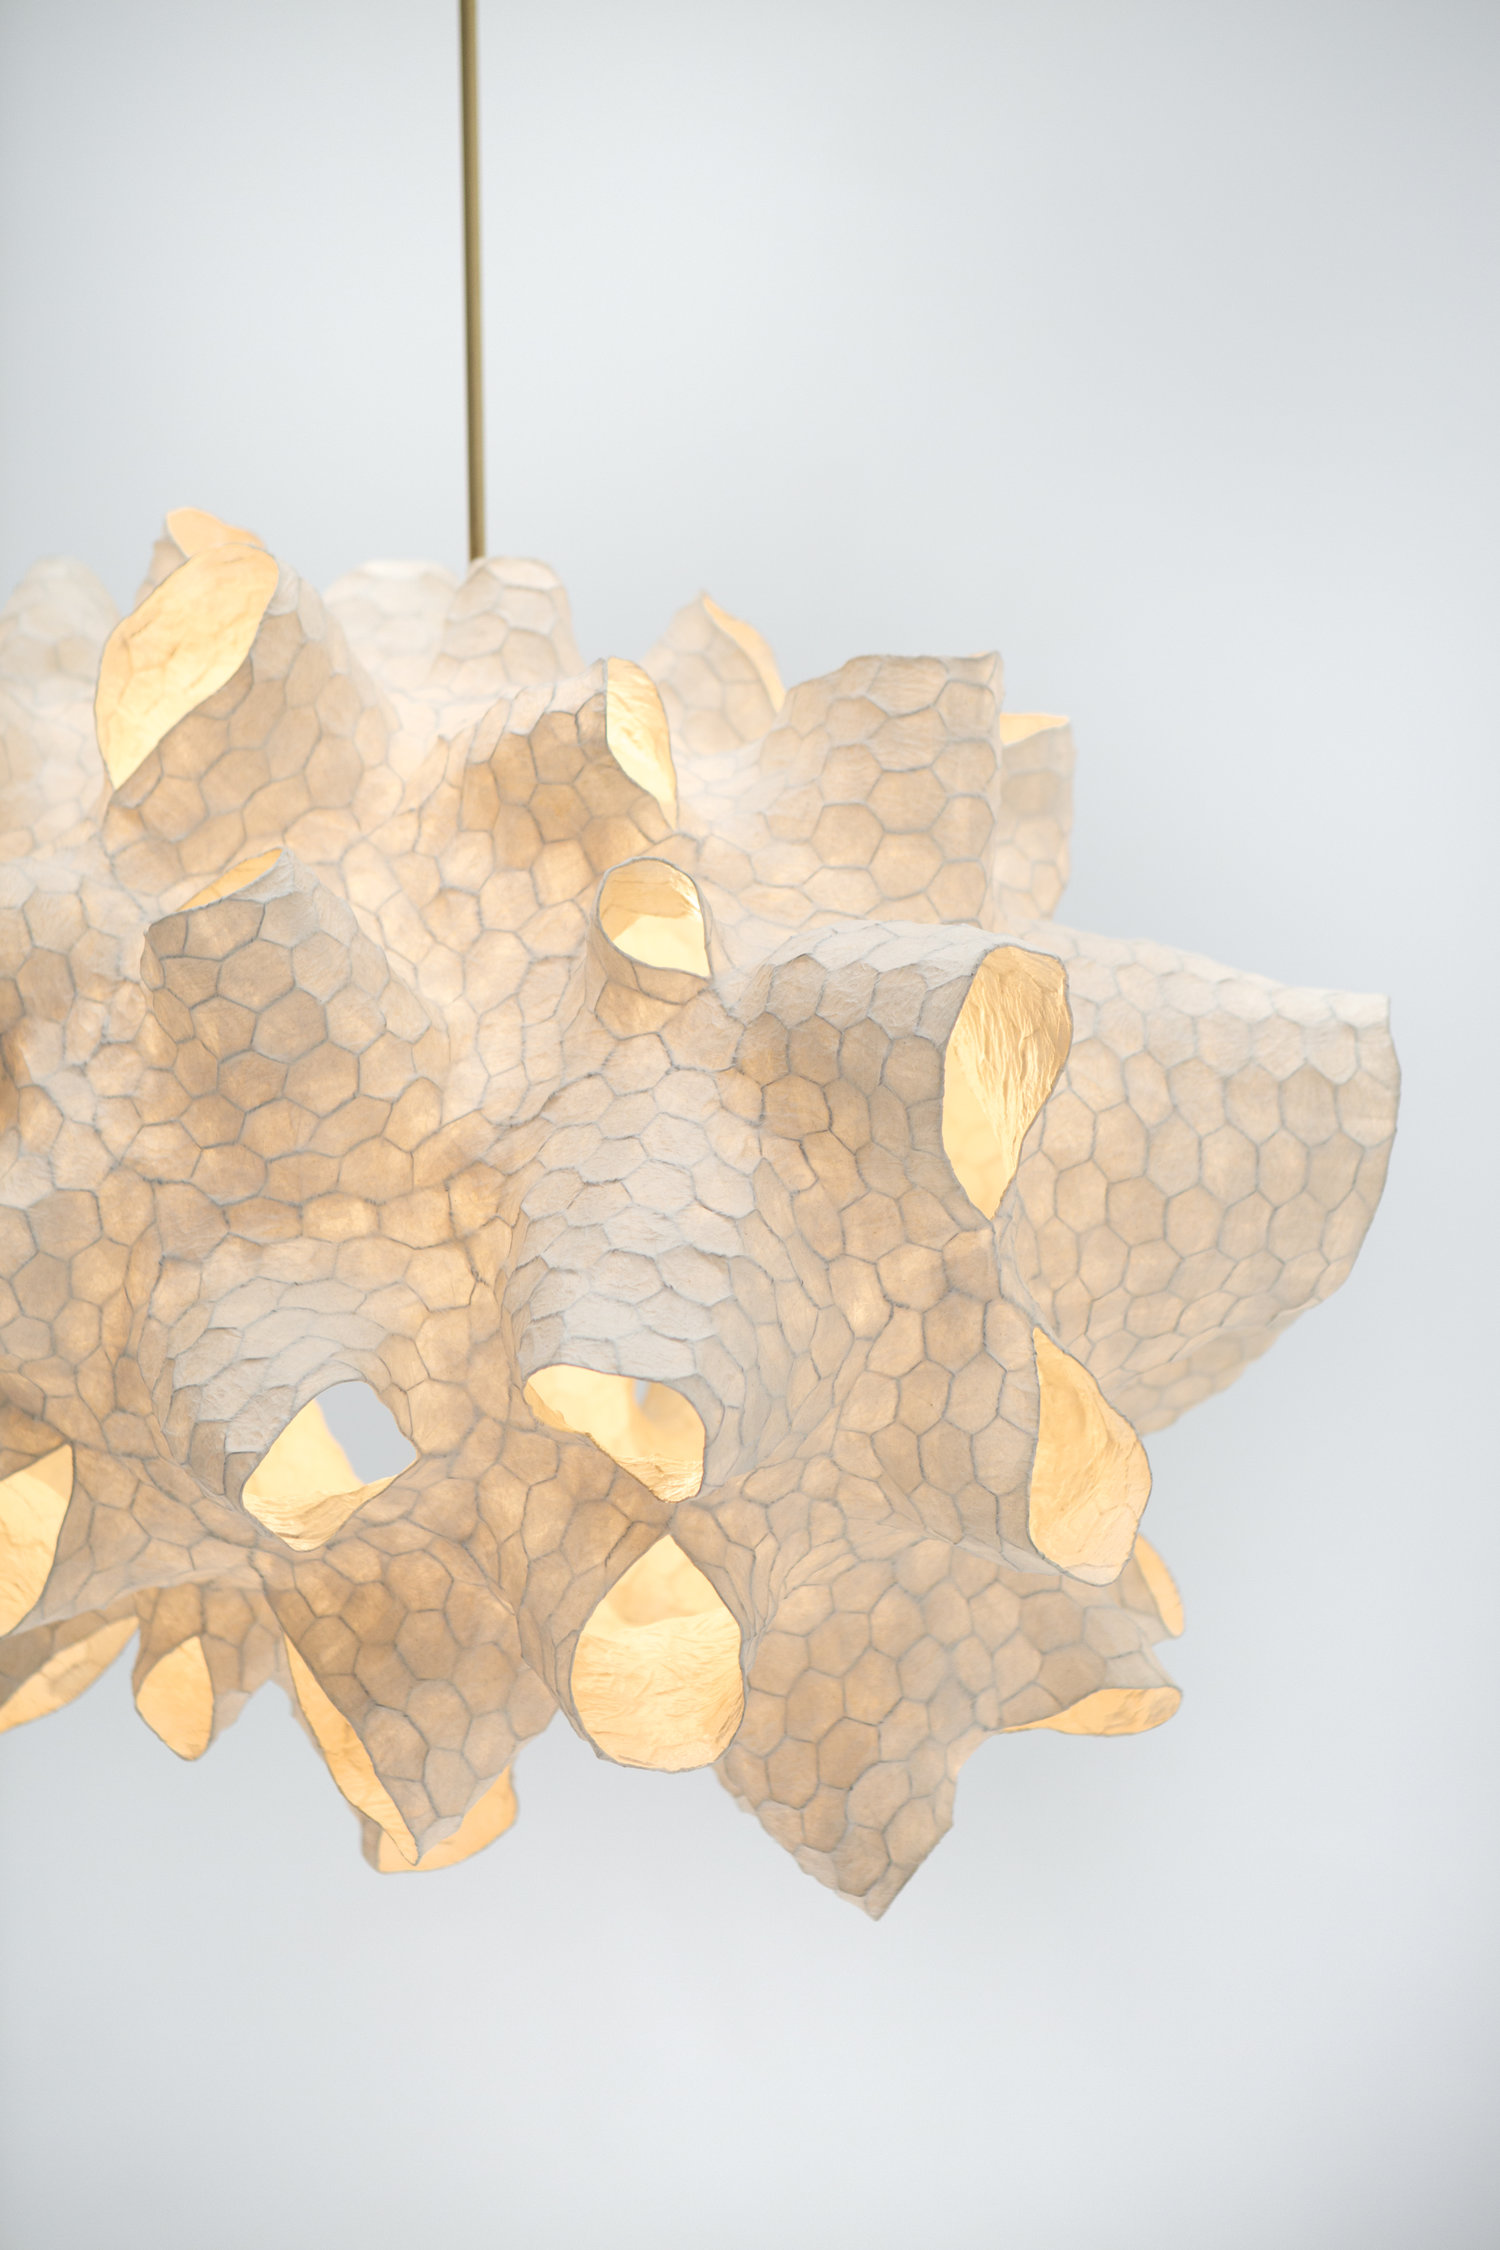 Honeycomb Light Sculpture by Patrick Weder